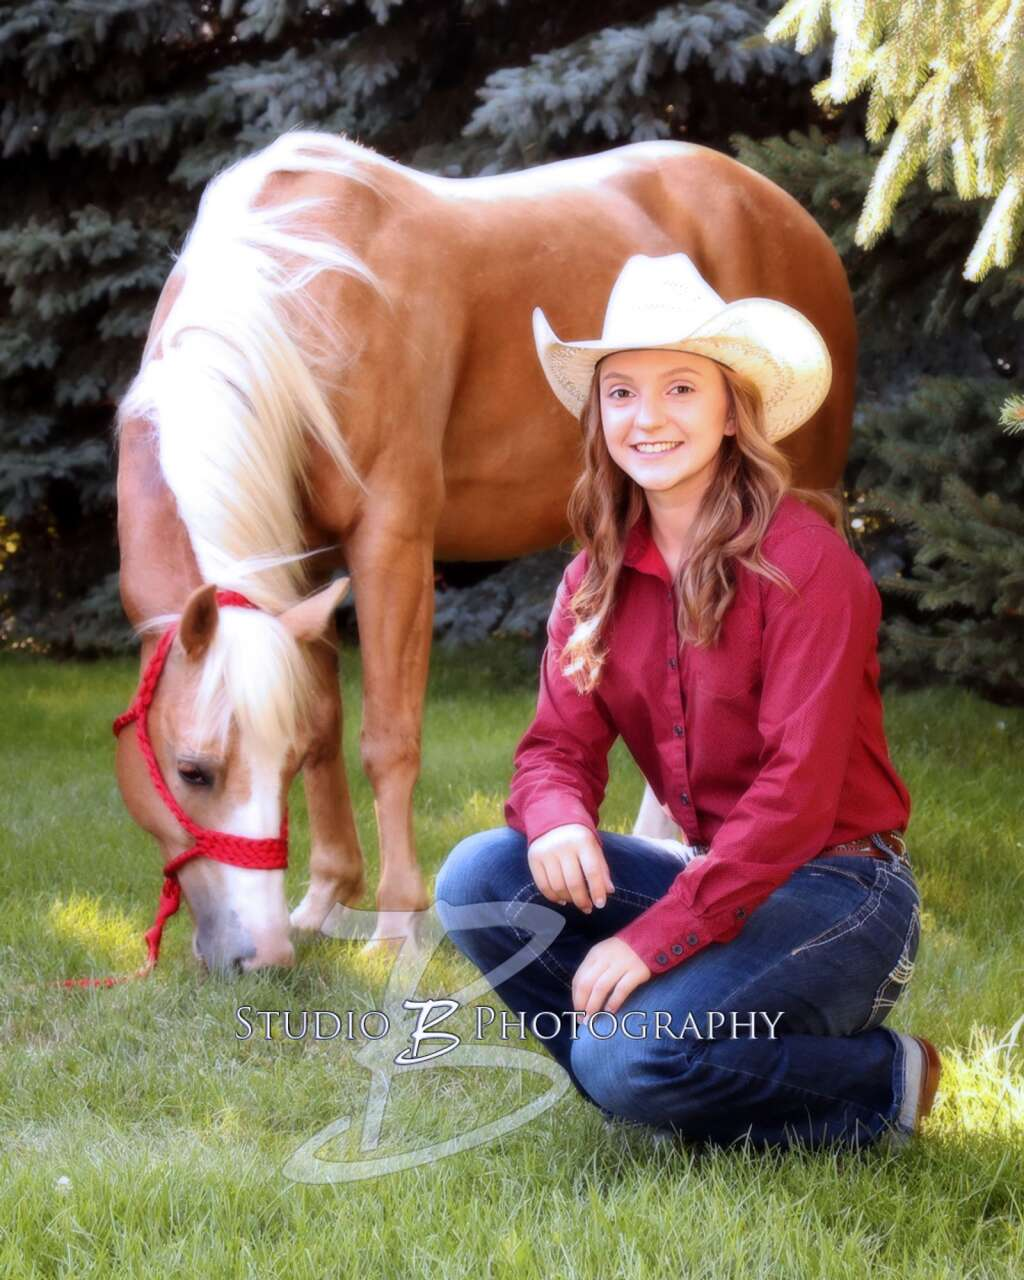 Kaci Wickersham, Verdigre, Neb., is co-valedictorian of the Summerland High School at Orchard Class of '21. She is headed to her third Nebraska State High School Finals Rodeo this June. Photo courtesy Studio B Photography